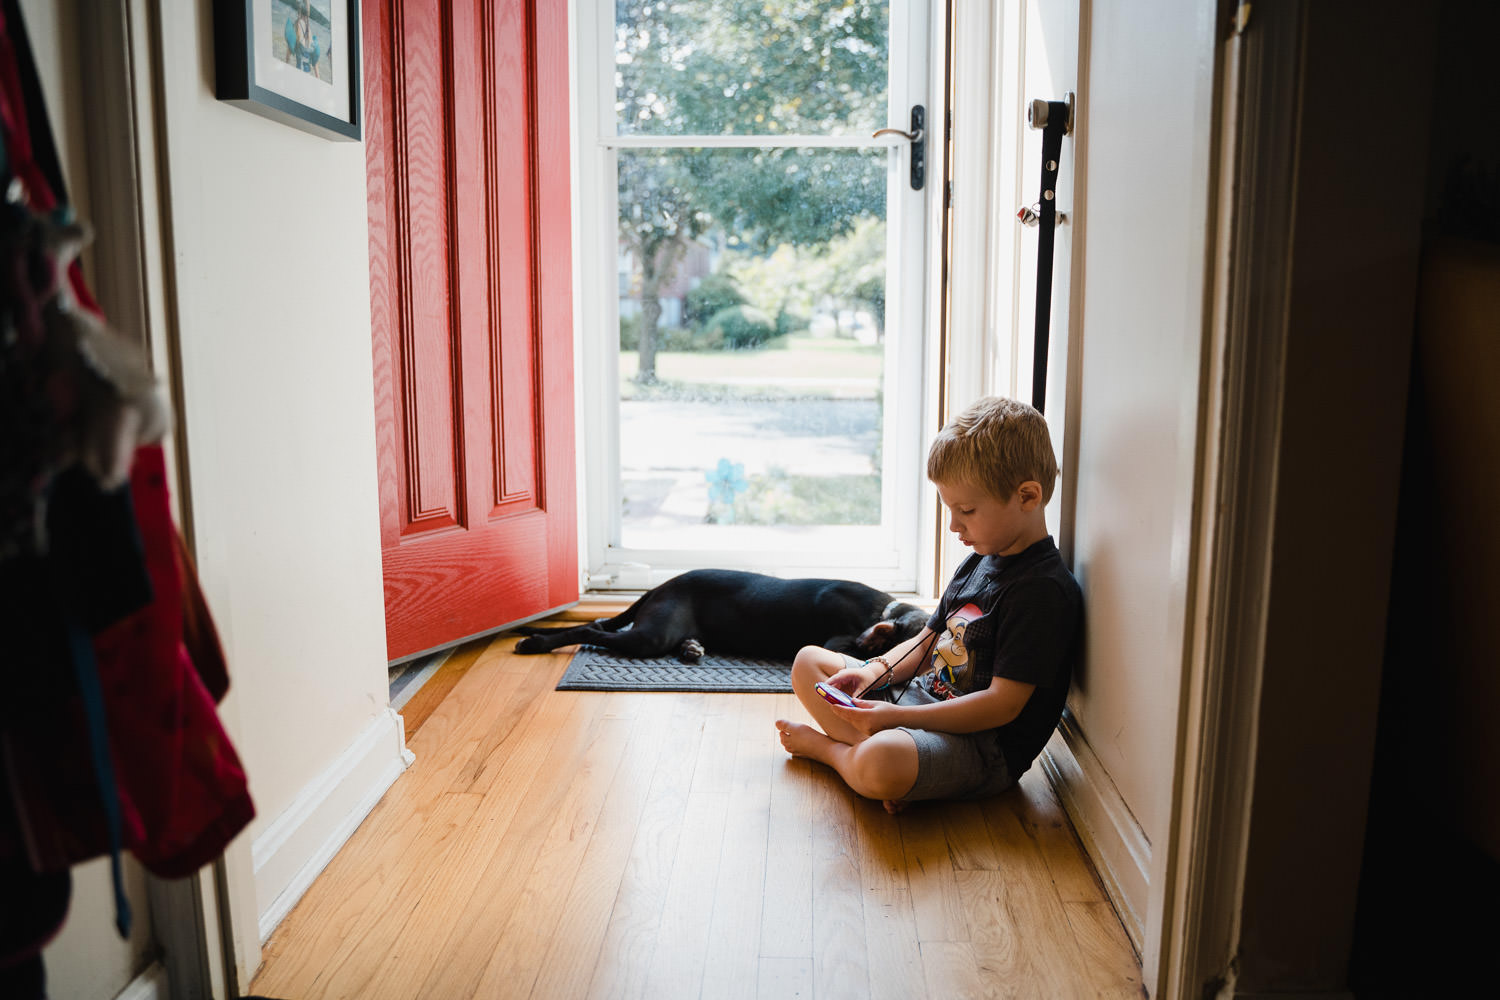 A boy and his dog sit near their front door.